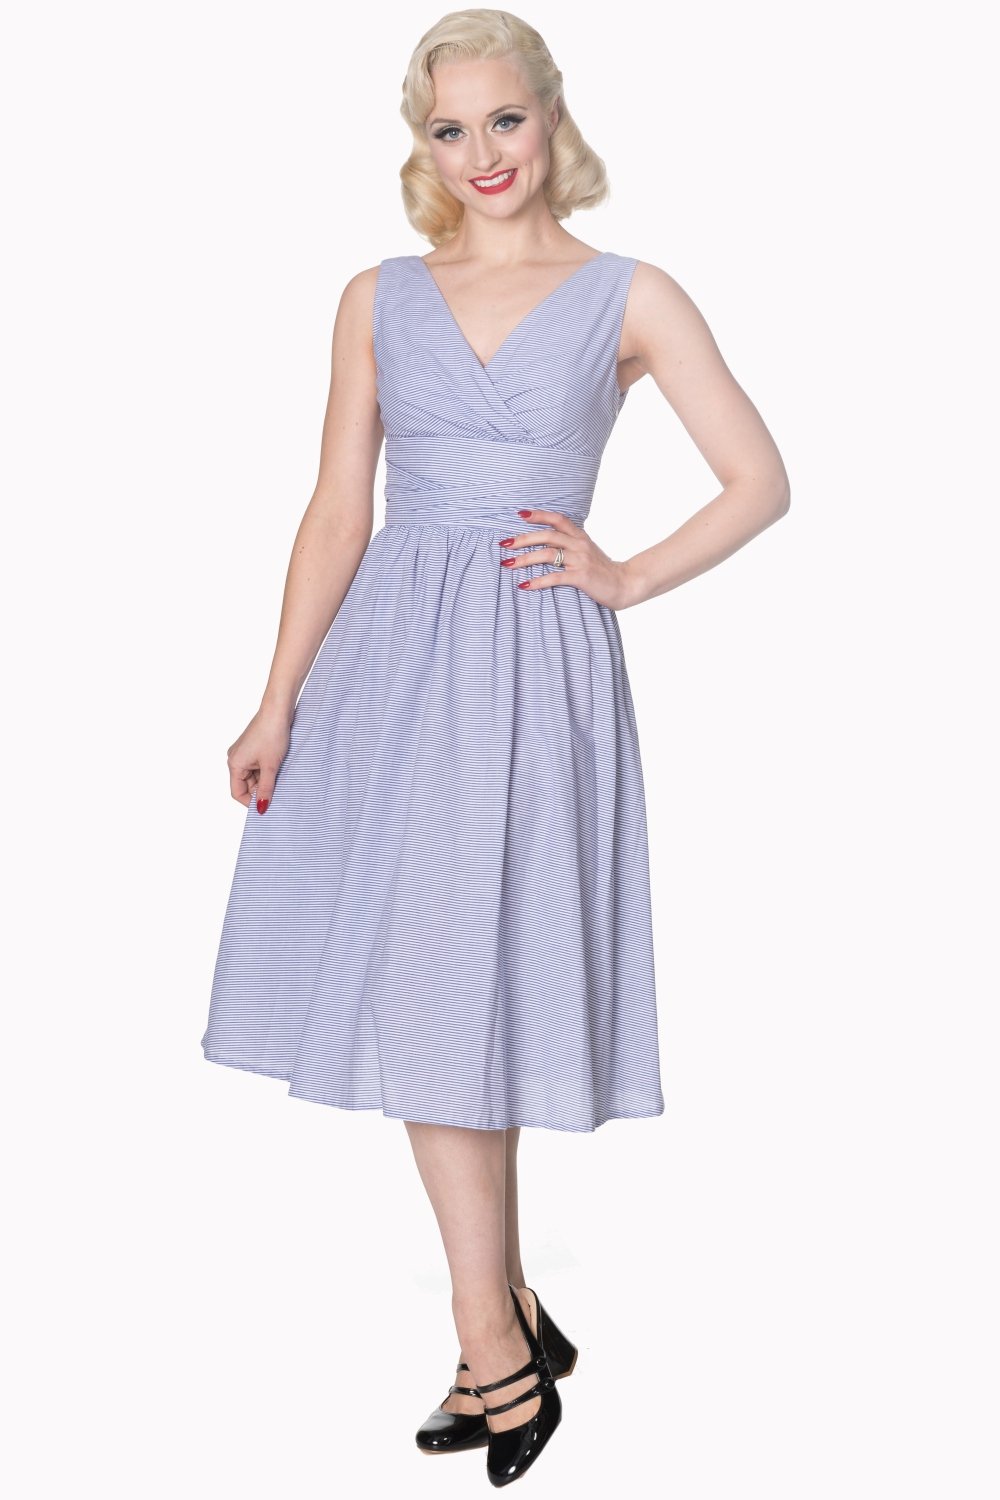 Dancing Days 50s Striped Blue And White Swing Dress